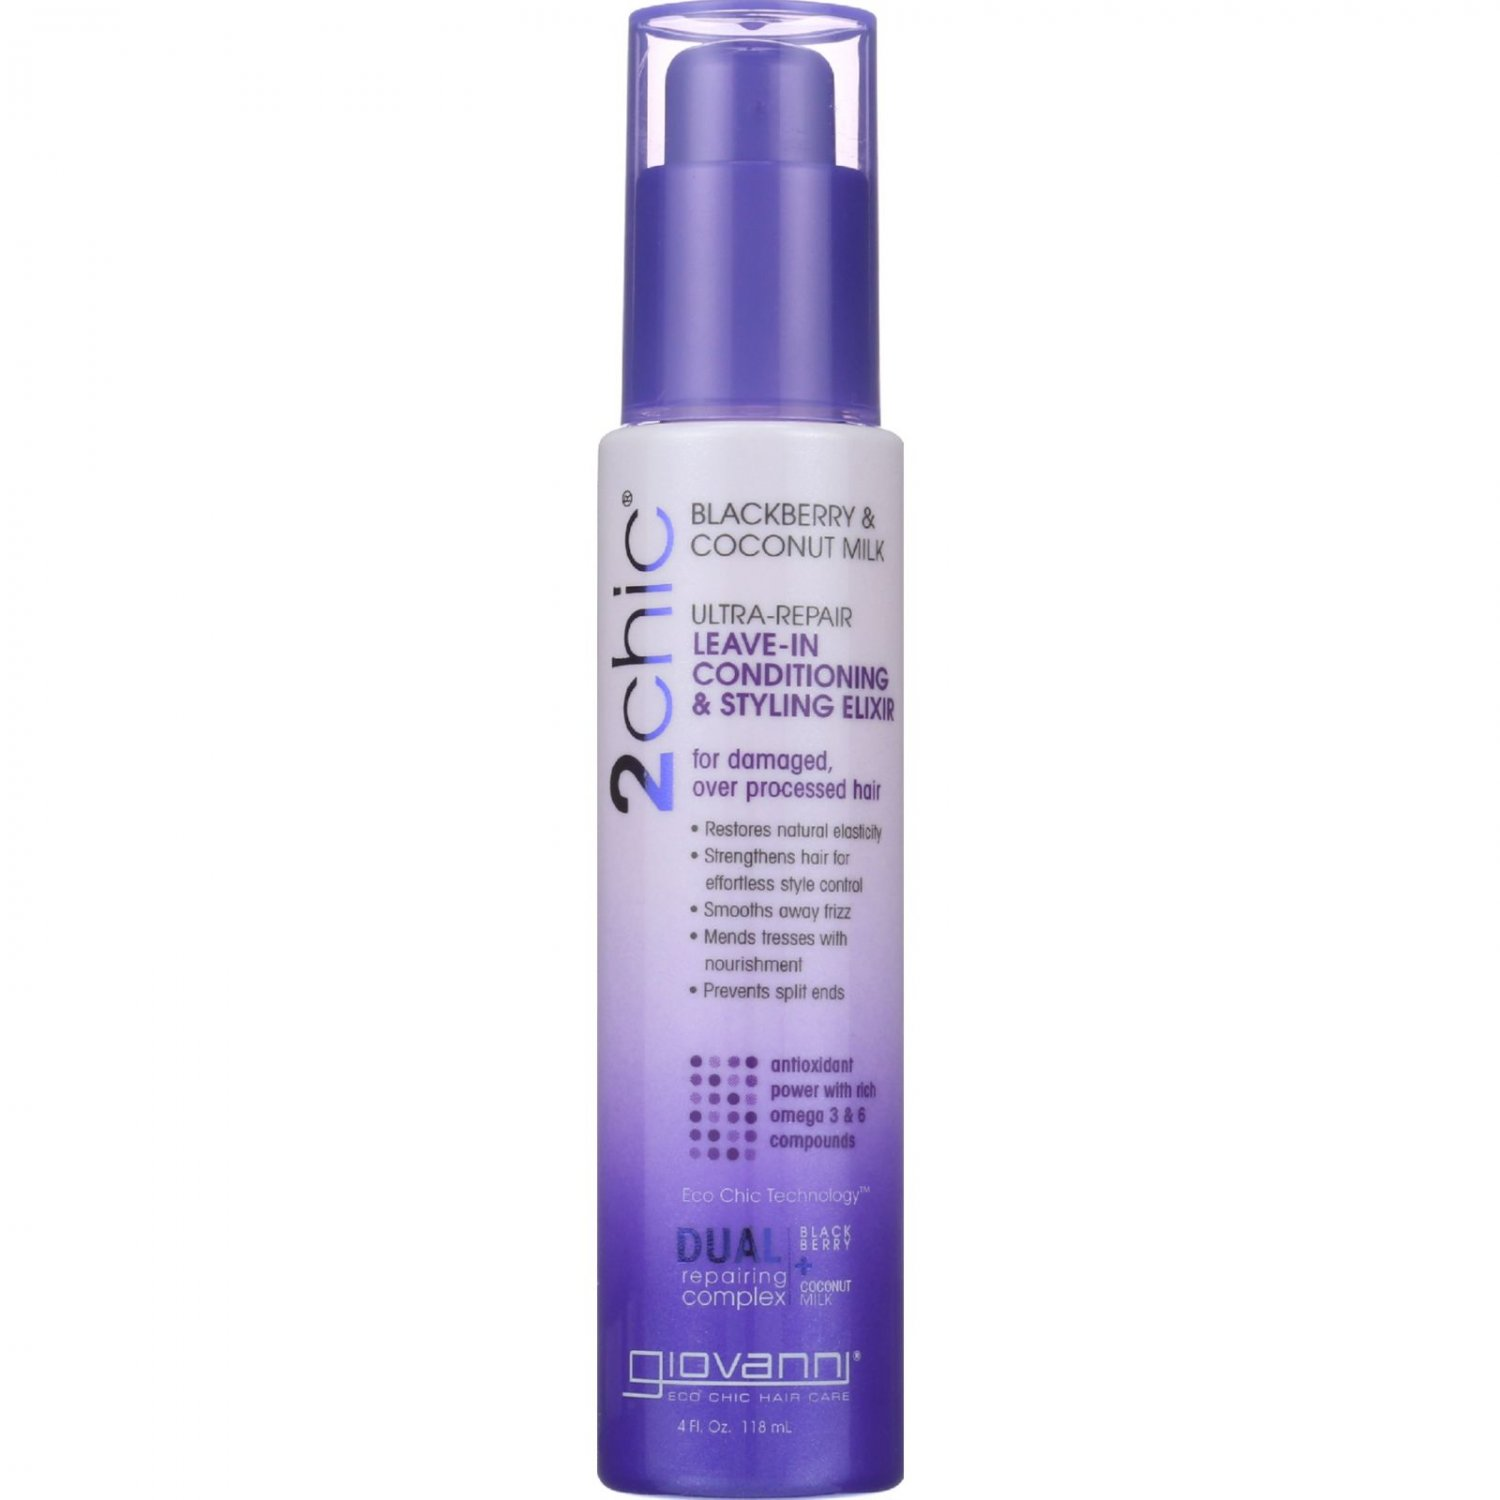 Giovanni Hair Care Products Conditioner - 2Chic - Repairing - Leave-In Conditioning and Styling Elix